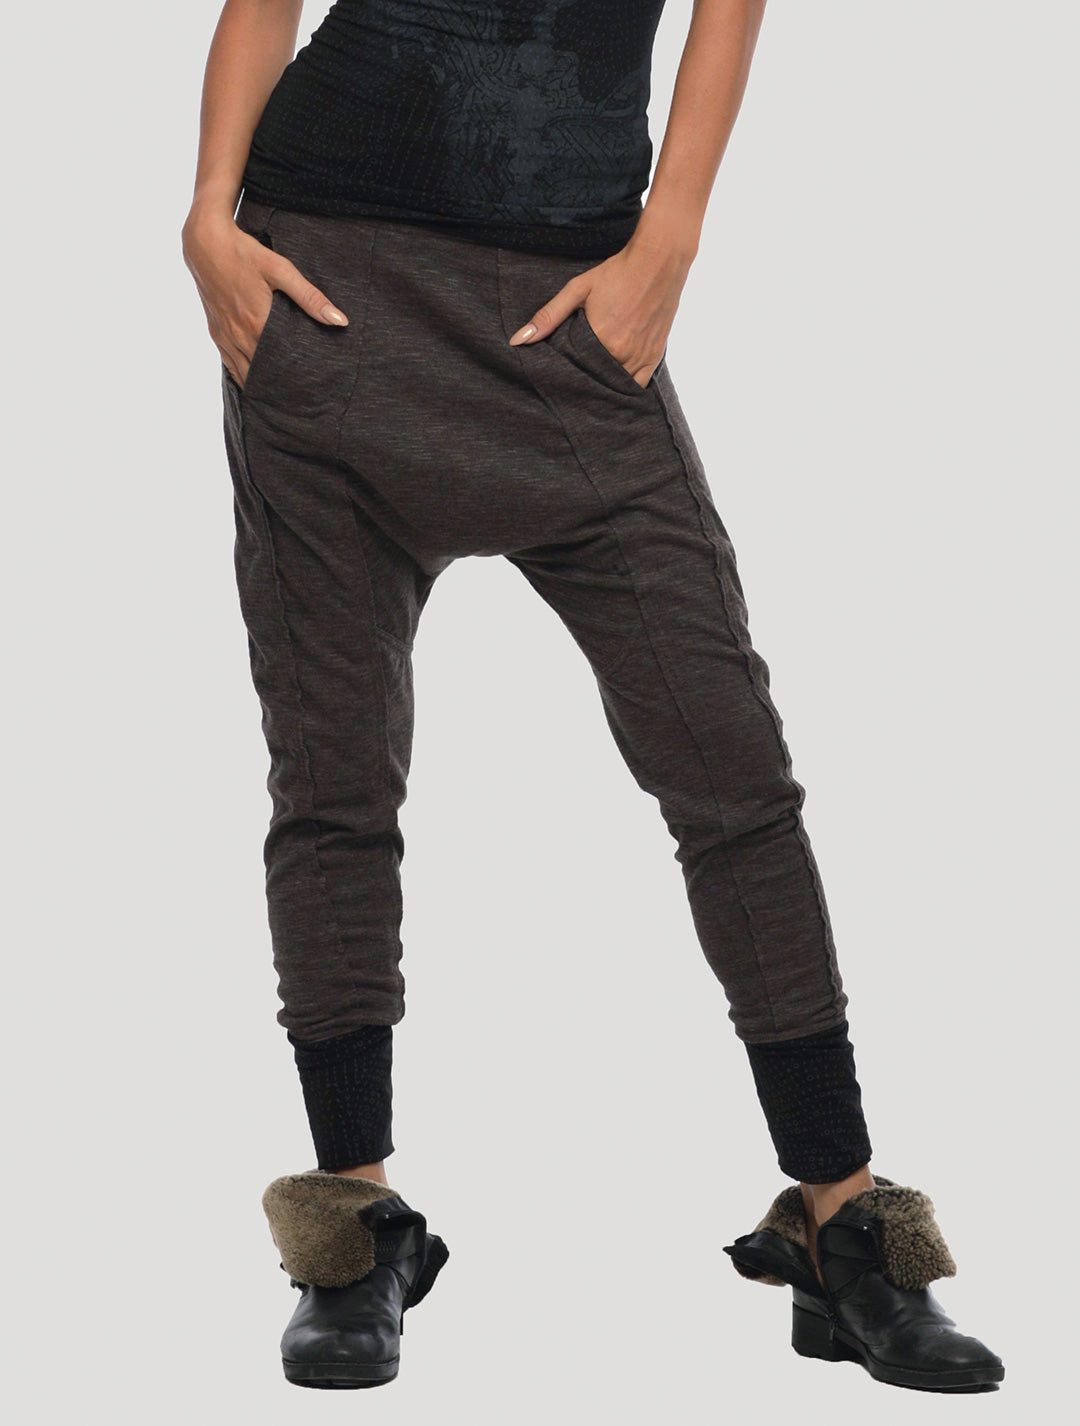 Onicha Low Crotch Track Pants